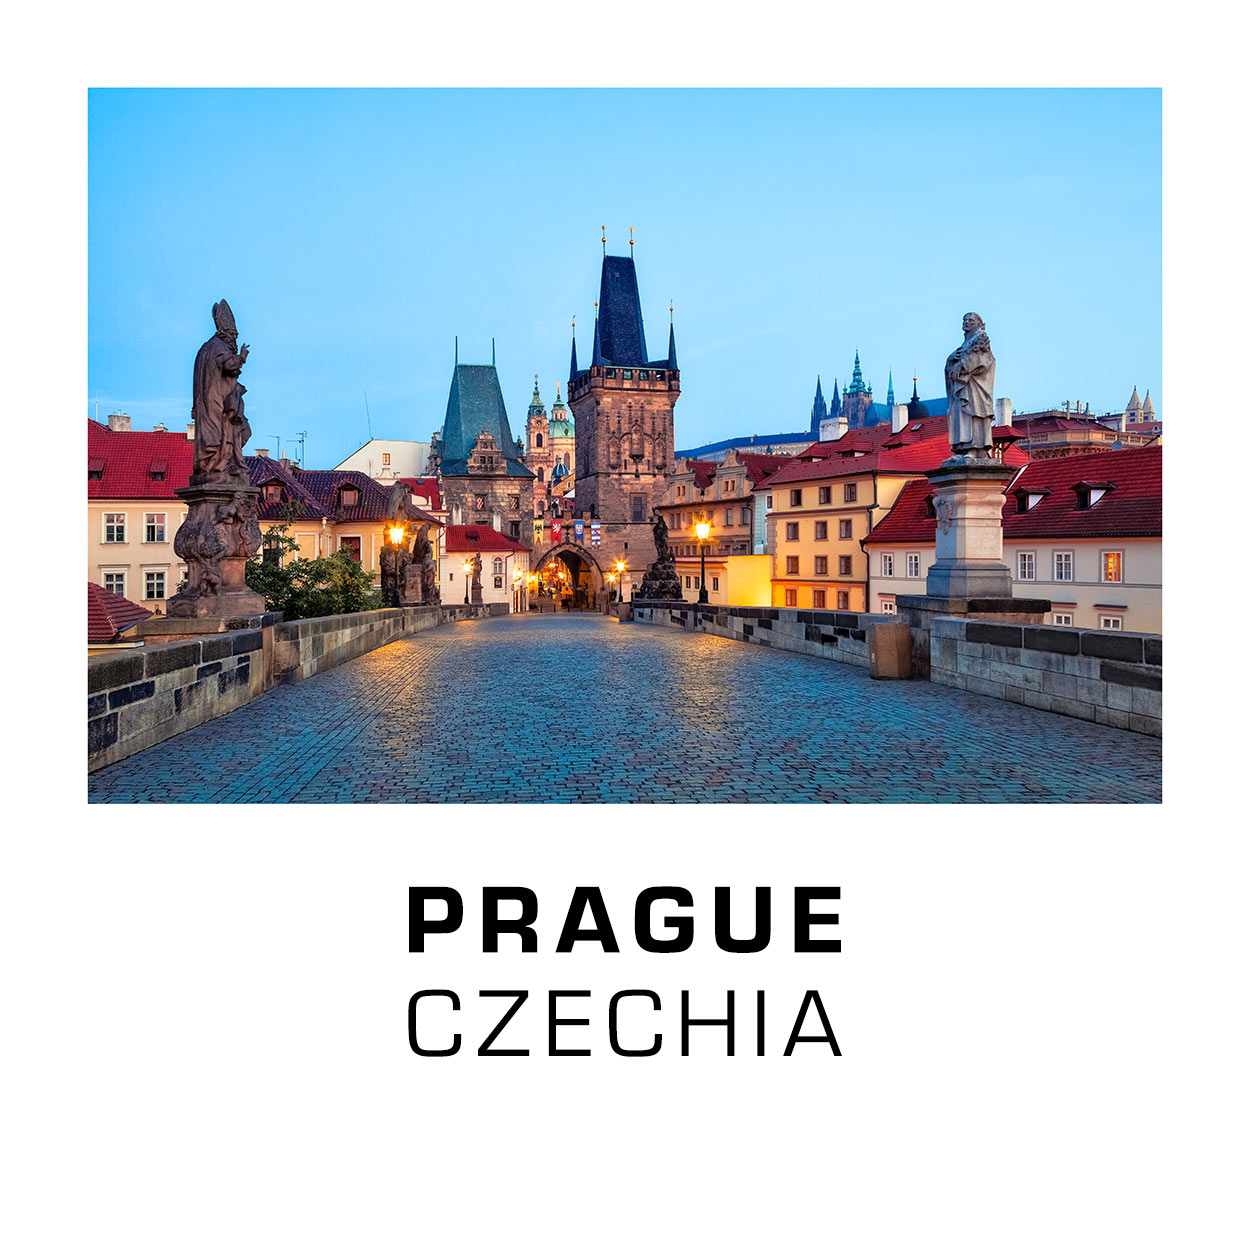 Prague 001C - Charles Bridge at Dawn, Czechia